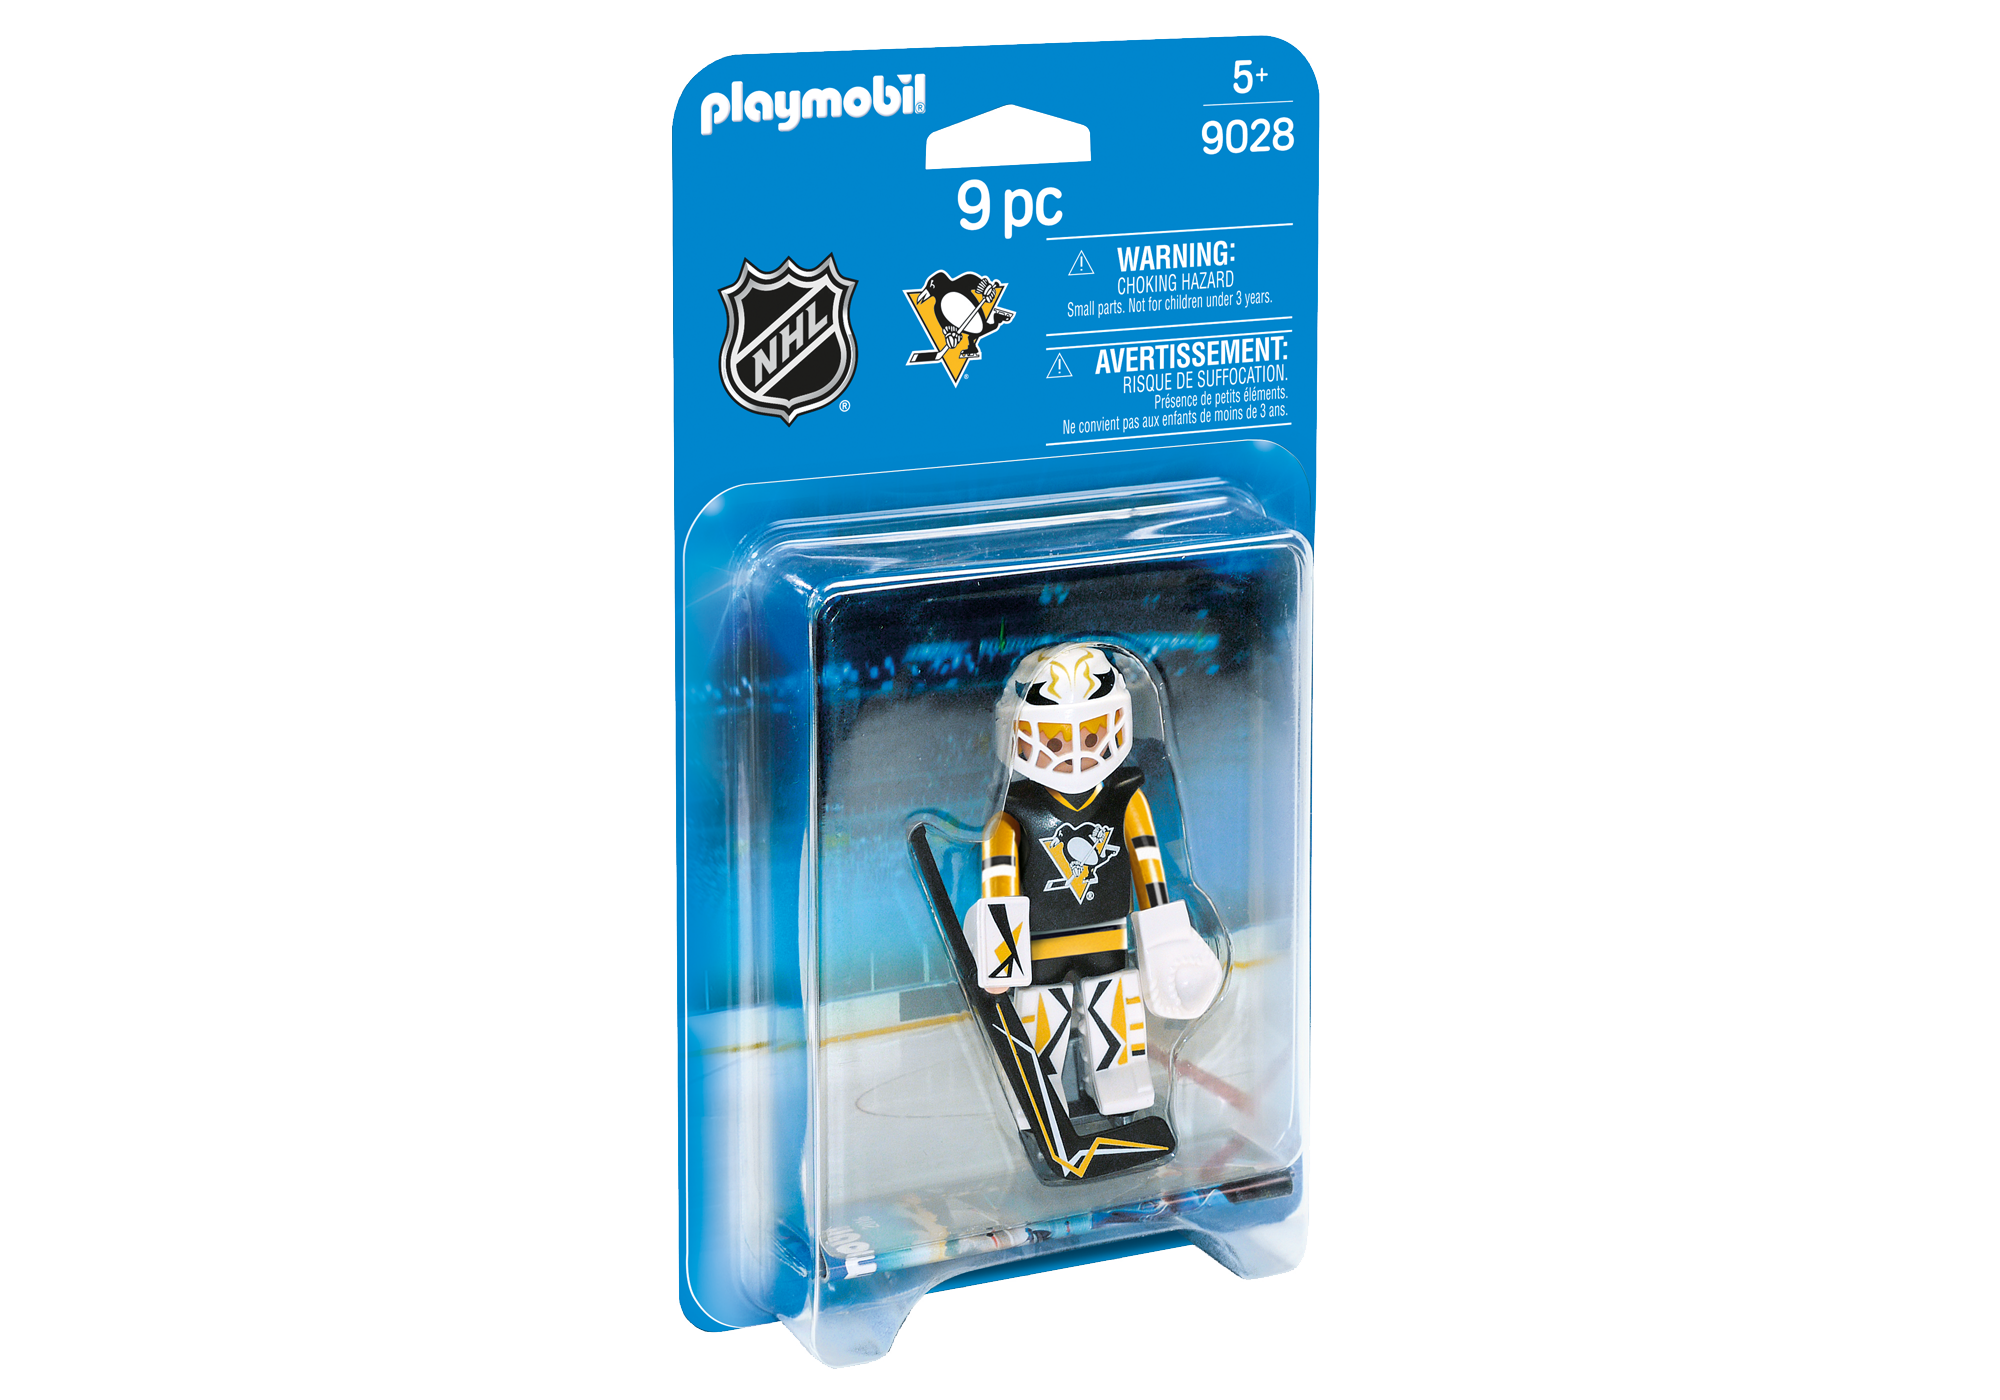 http://media.playmobil.com/i/playmobil/9028_product_box_front/NHL™ Pittsburgh Penguins™ Goalie